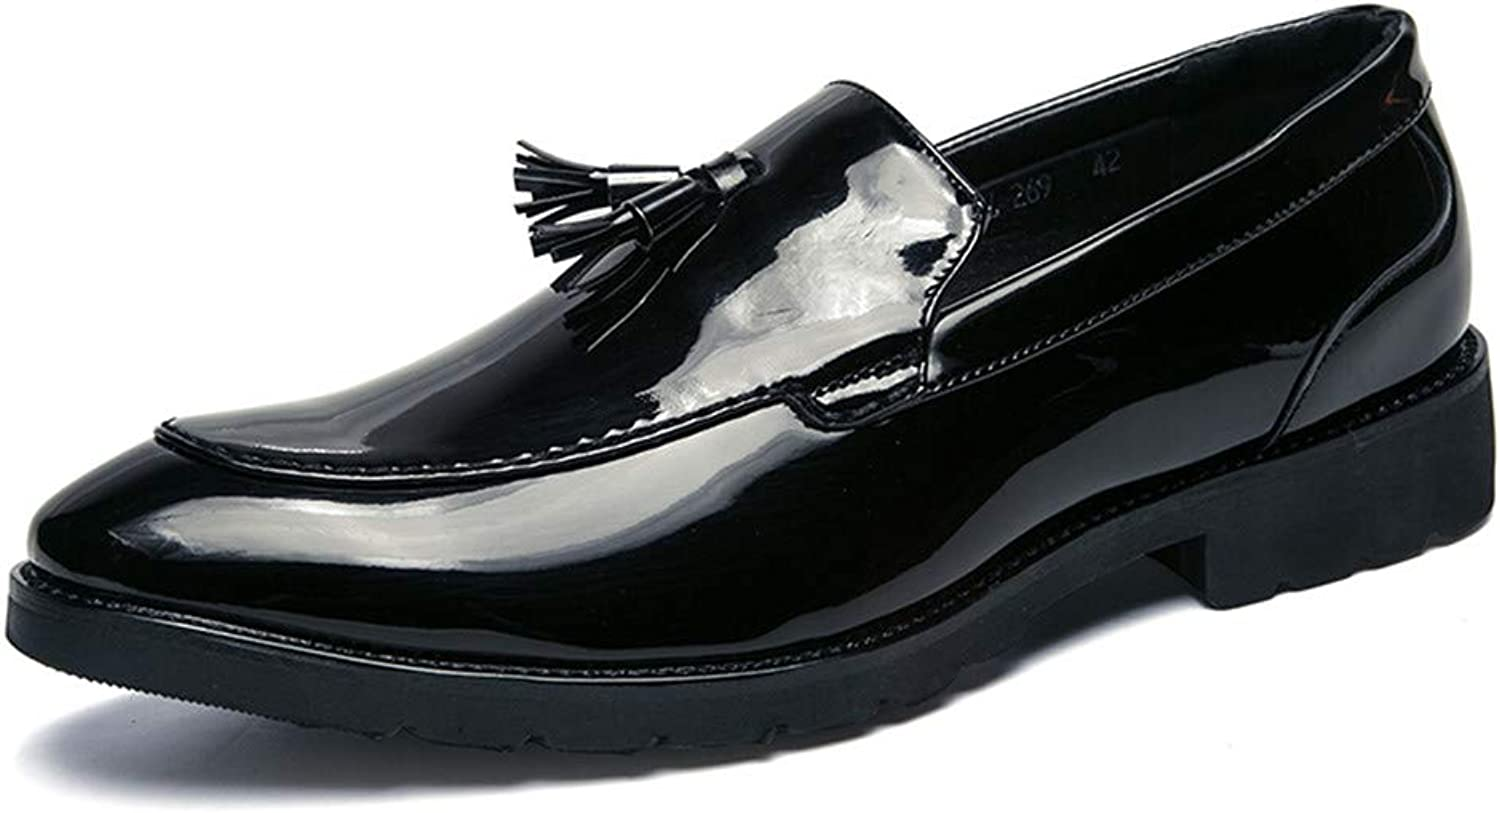 For 2018's, Men's Tassel Oxford shoes Moccasins Slip-On Classic Penny Loafer shoes